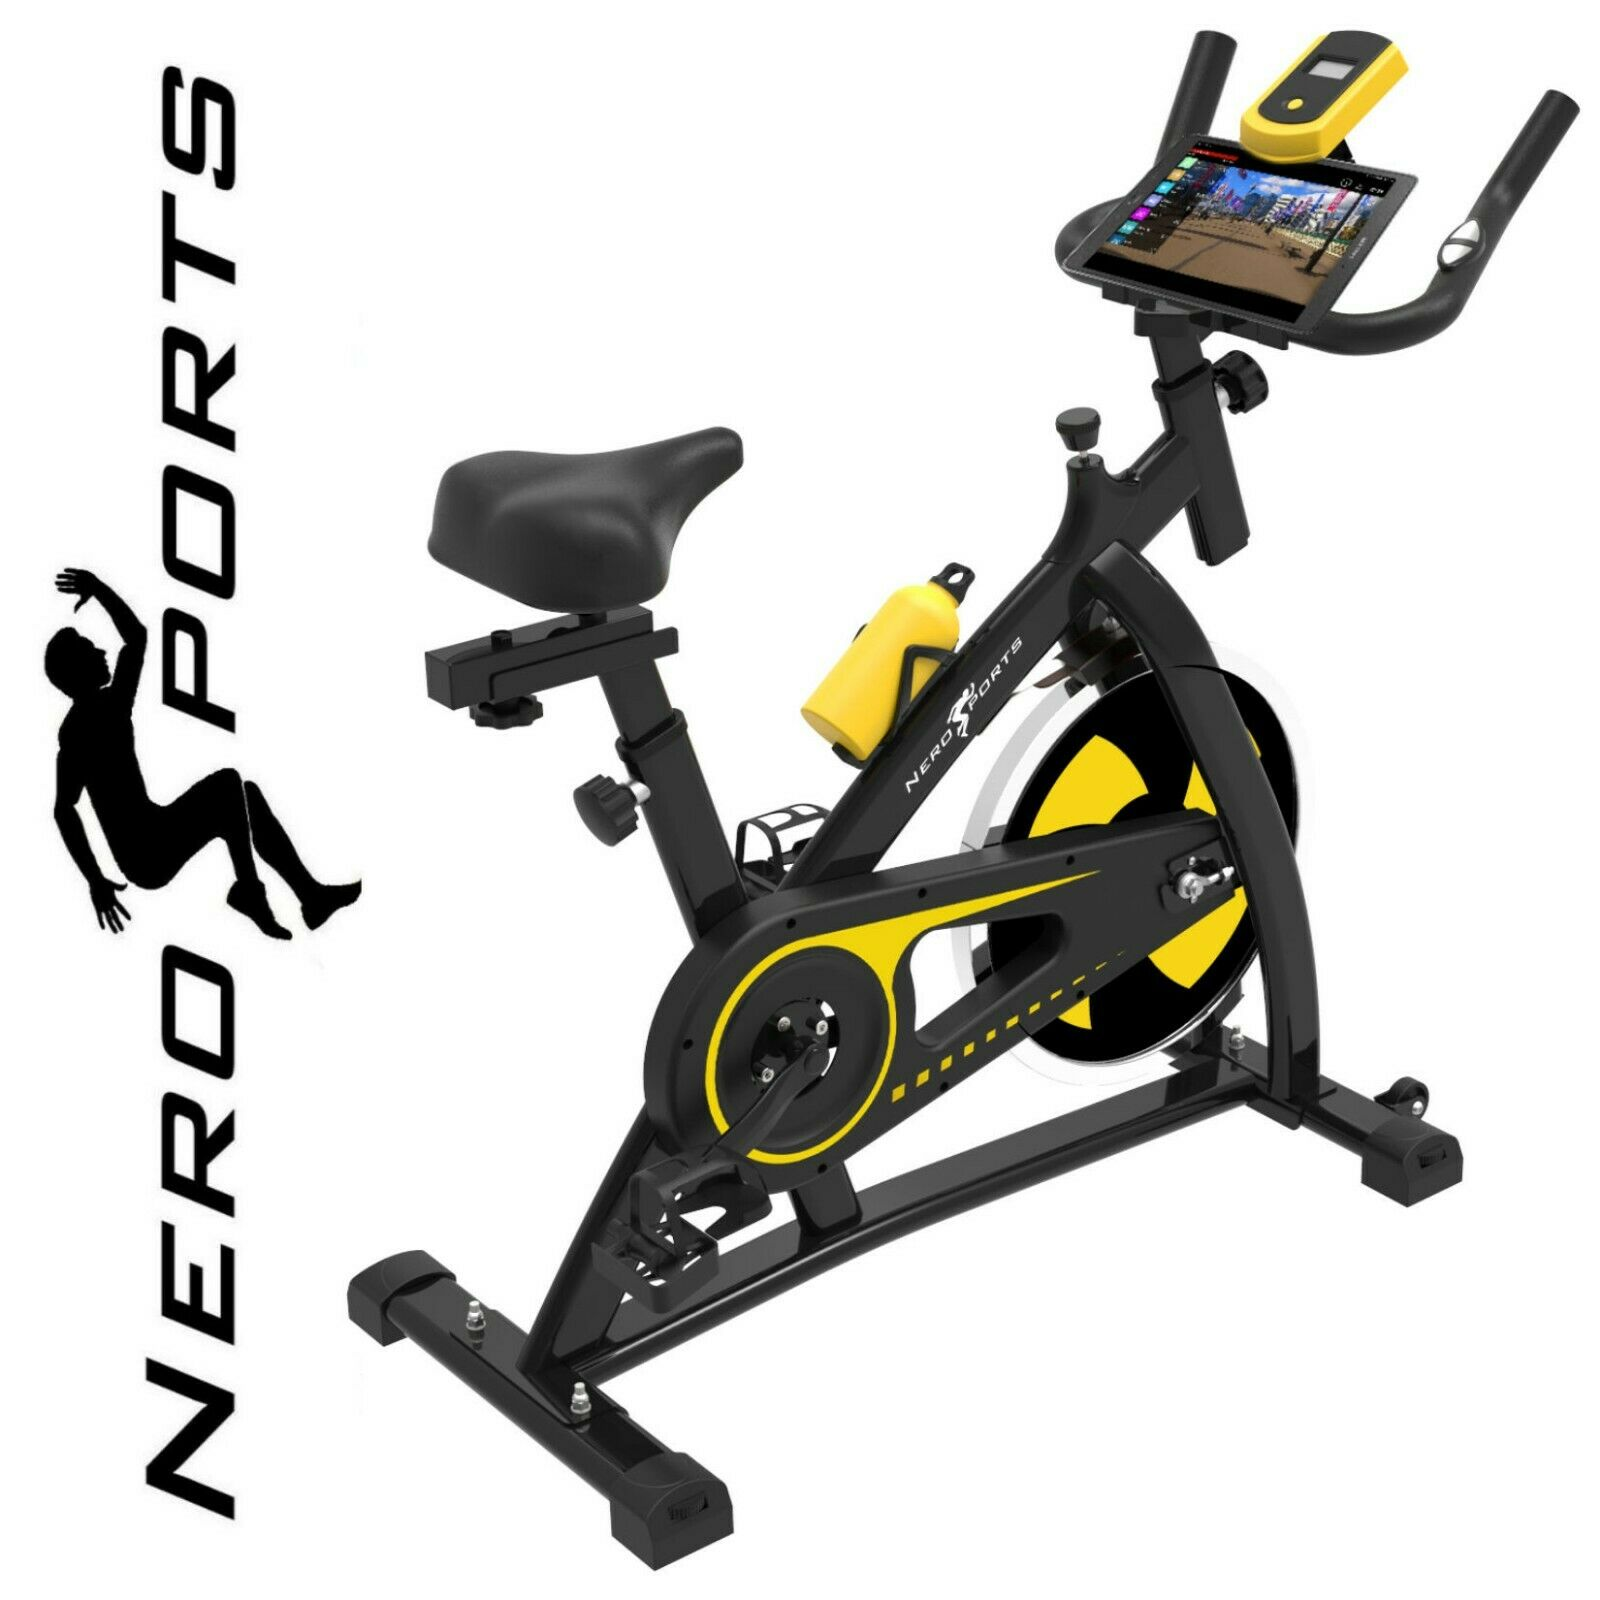 Nero Sports Spin Bike Aerobic Exercise Indoor Training Fitness Gym Spinning New